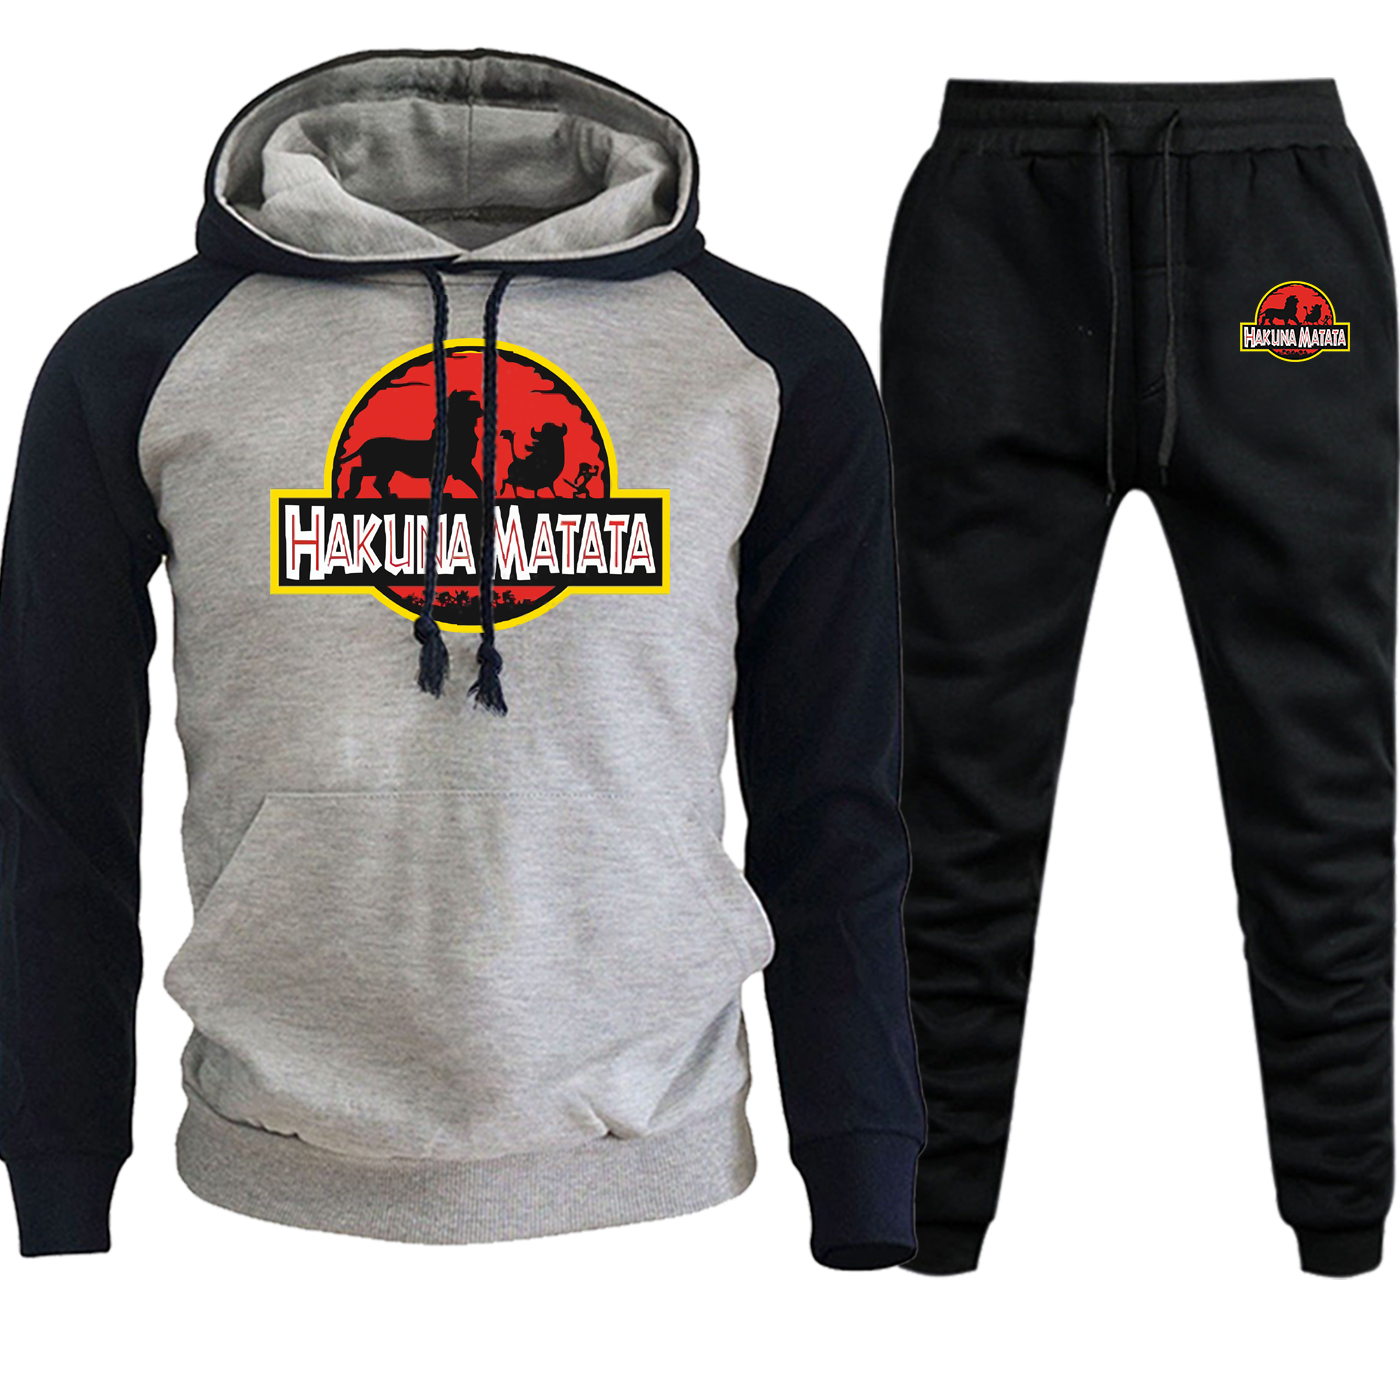 HAKUNA MATATA Cartoon Hoodied Mens Raglan Autumn Hot Sale The Lion King Suit Casual Pullover Fleece Streetwear+Pants 2 Piece Set